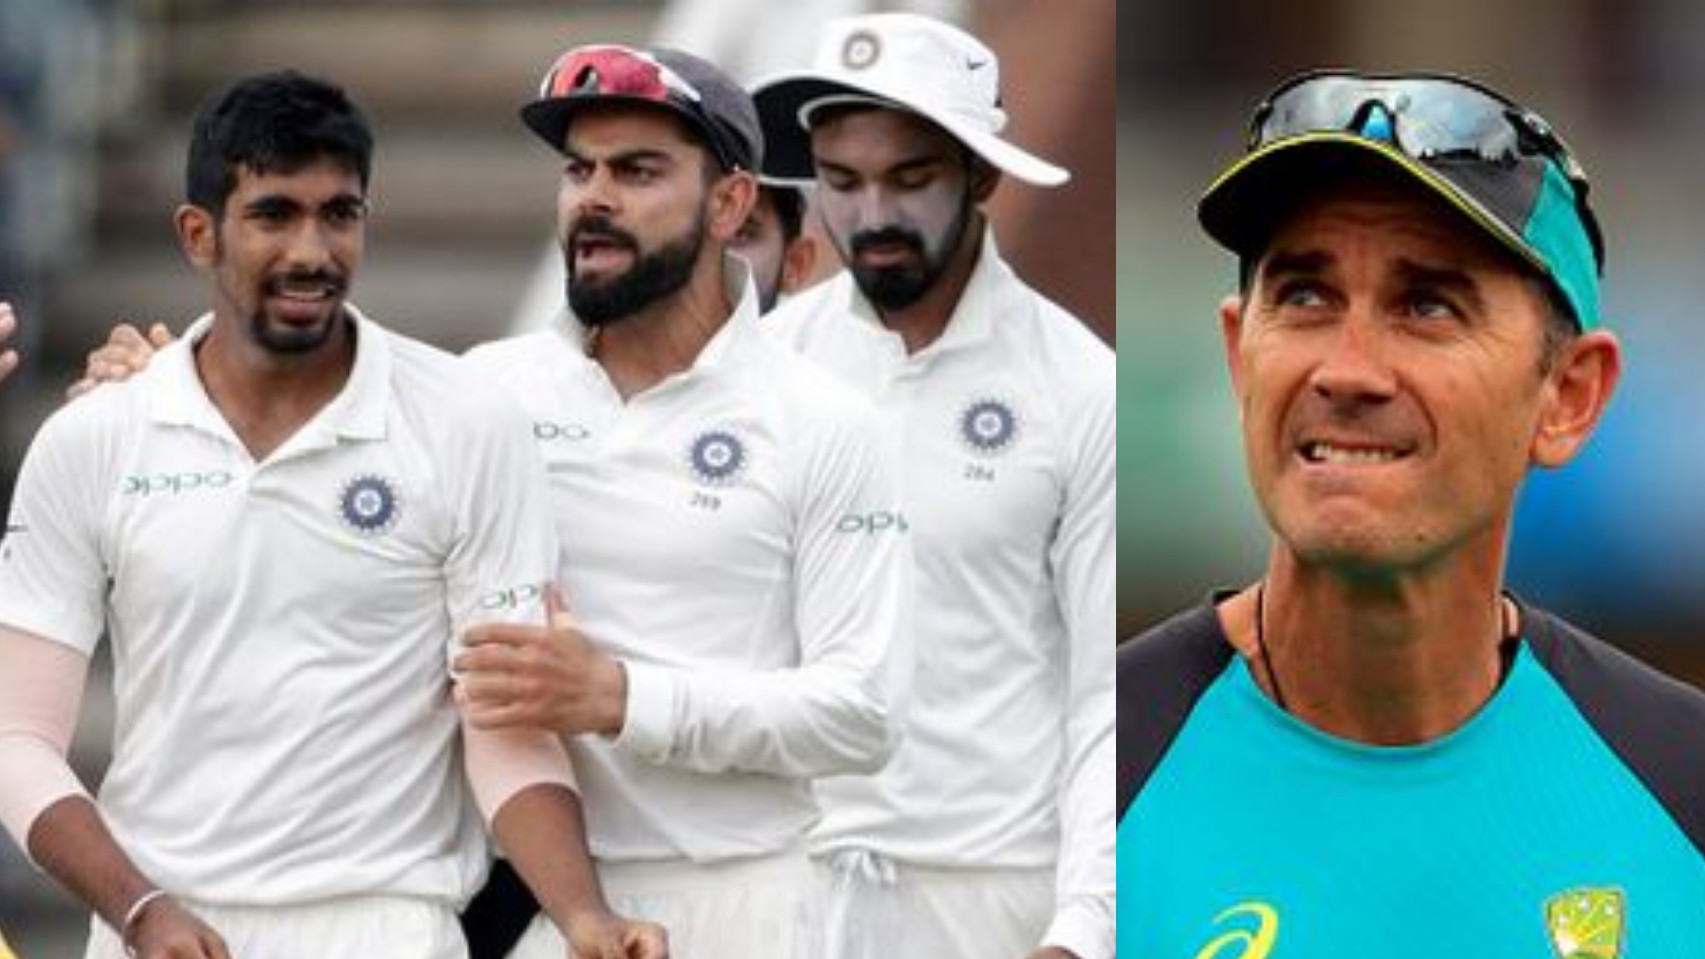 AUS v IND 2018-19: Justin Langer admits Indian team is in with a real chance this time around